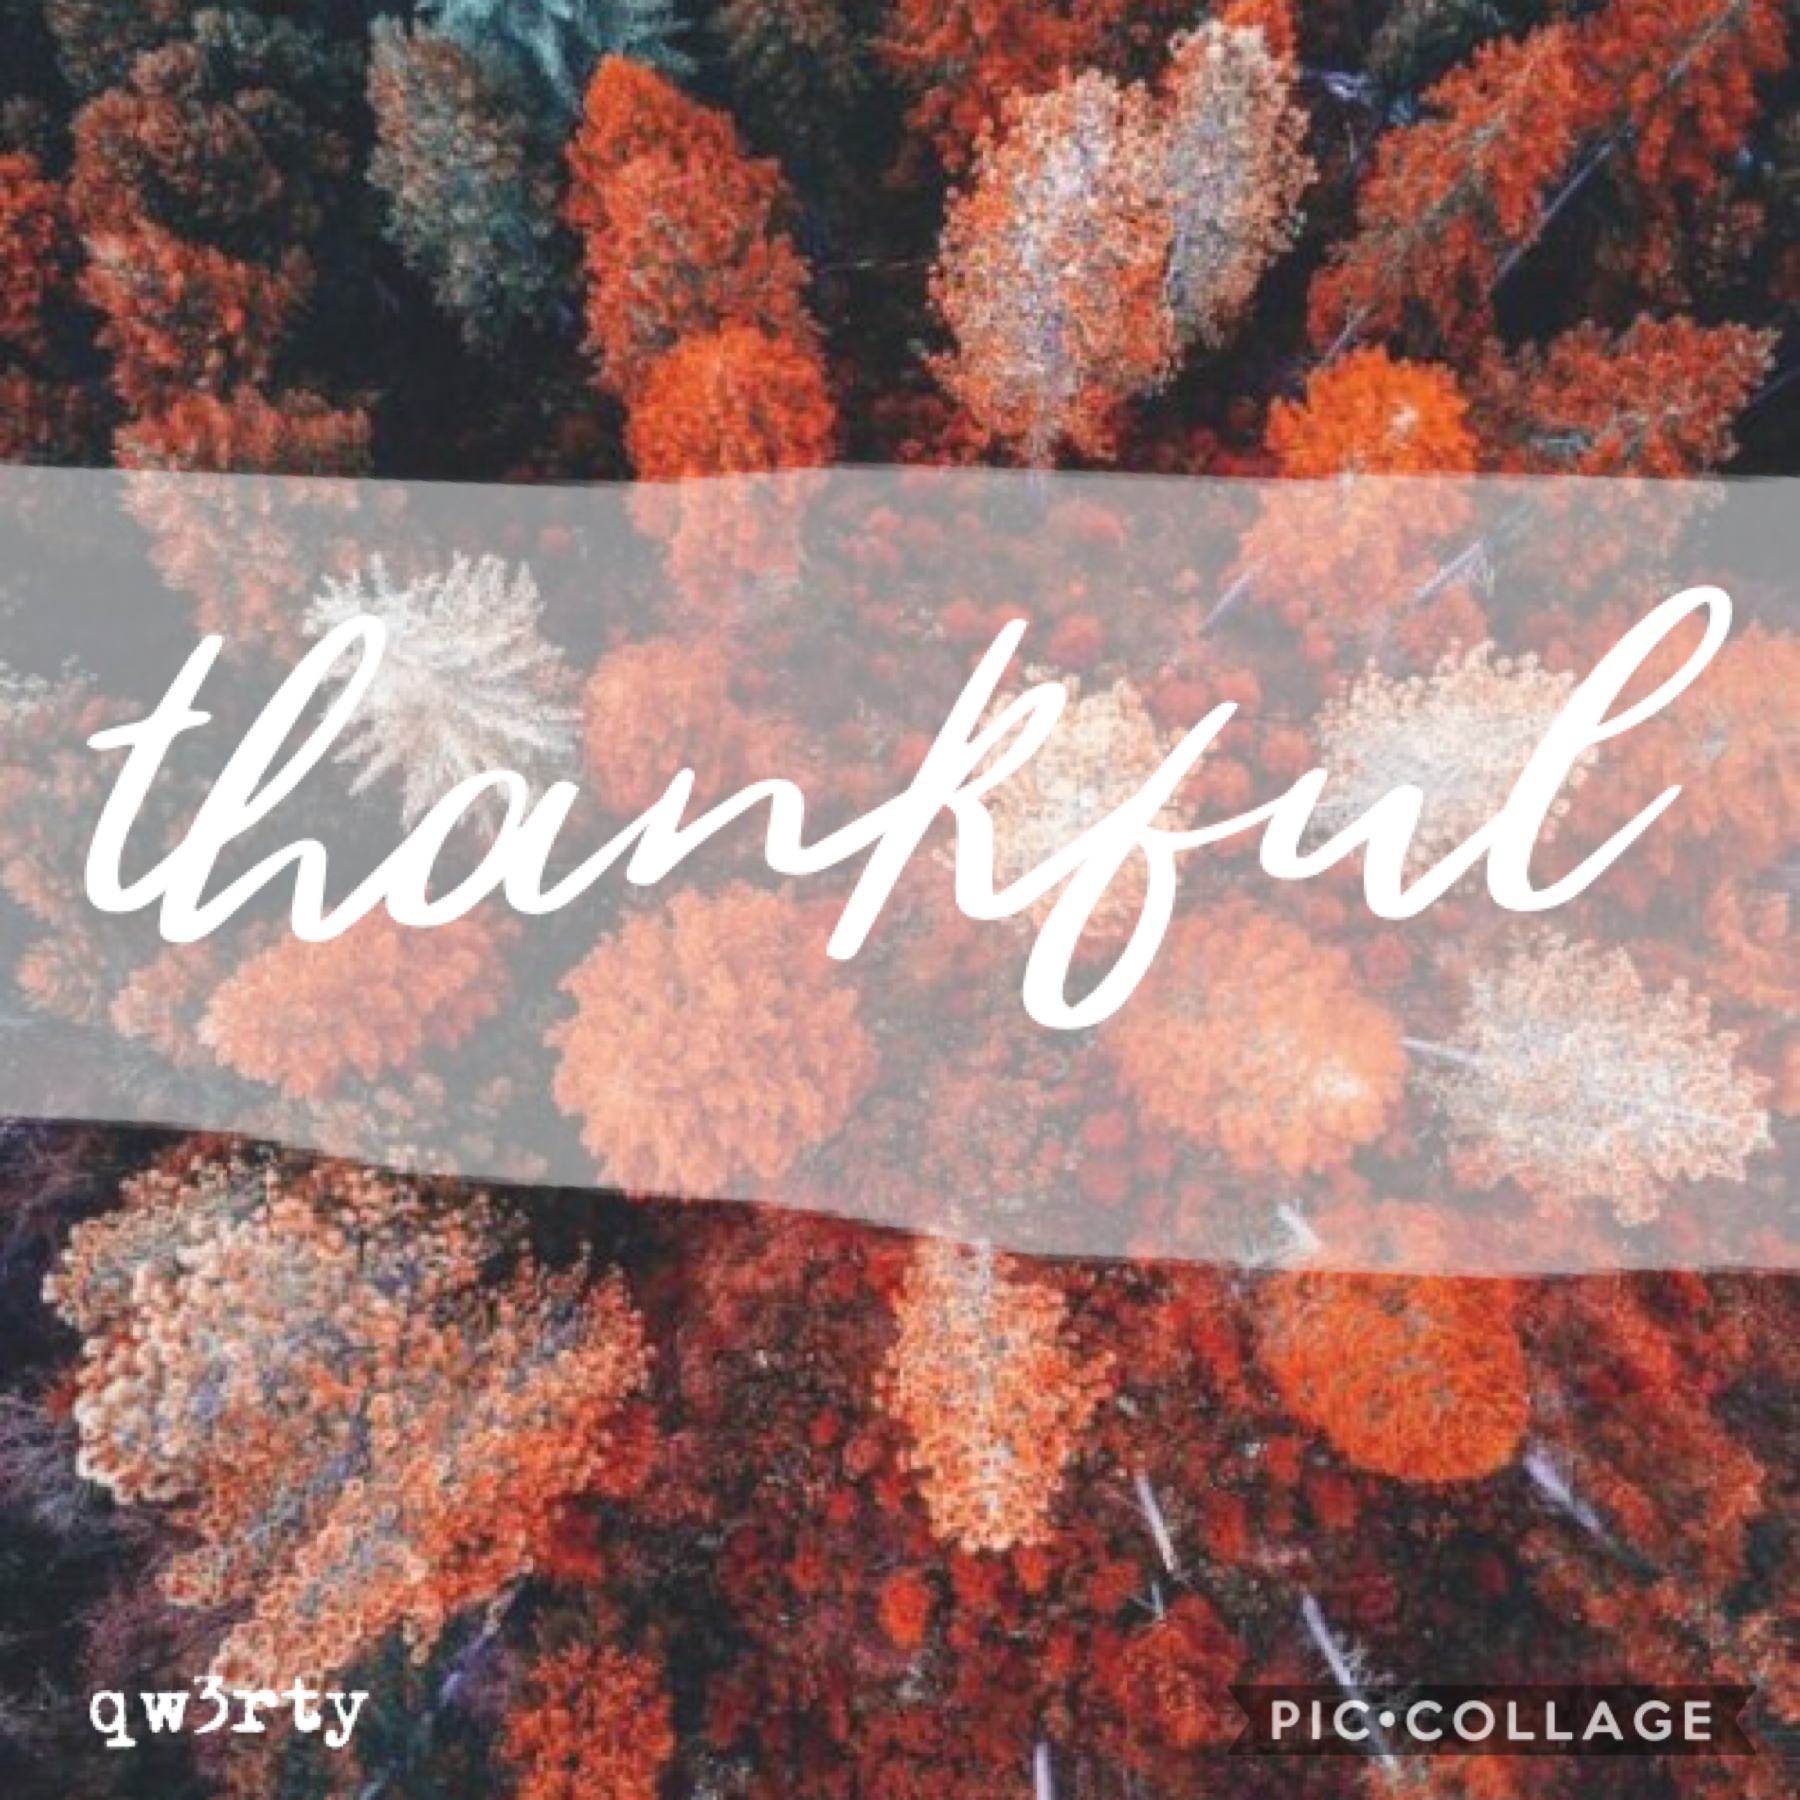 Tap Happy thanksgiving y'all! We all have so much to be thankful for, I can't fit it all here! It's been so looong, I've been so busy with school and stuff😩 Leeli